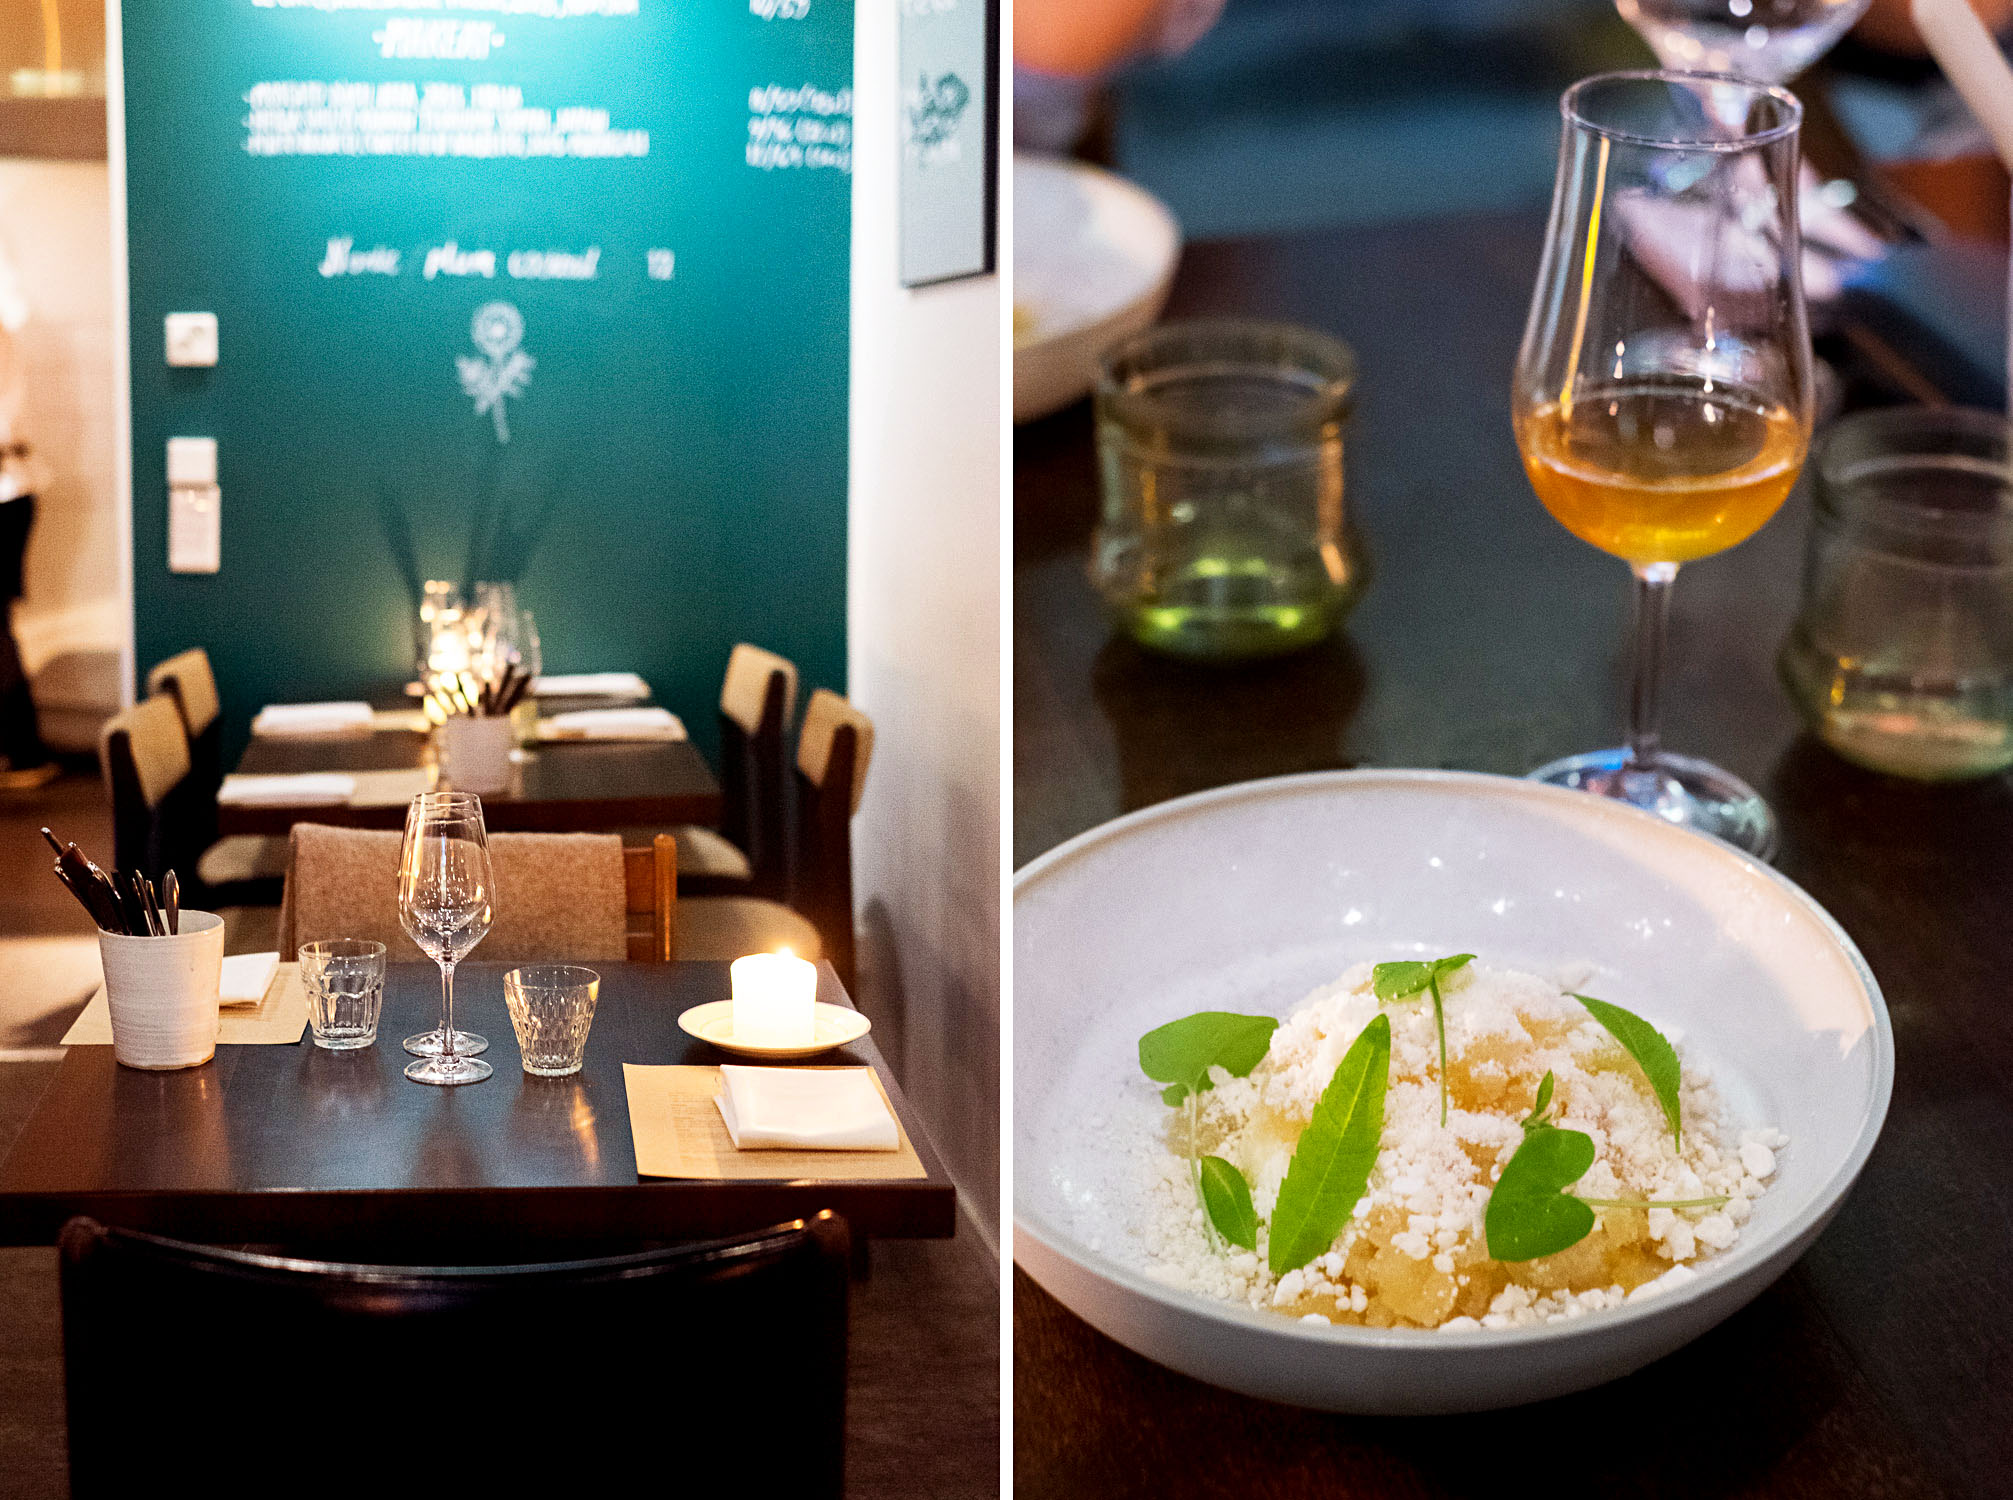 Where to Eat in Helsinki: A Two-Day City Guide to The Finnish Capital